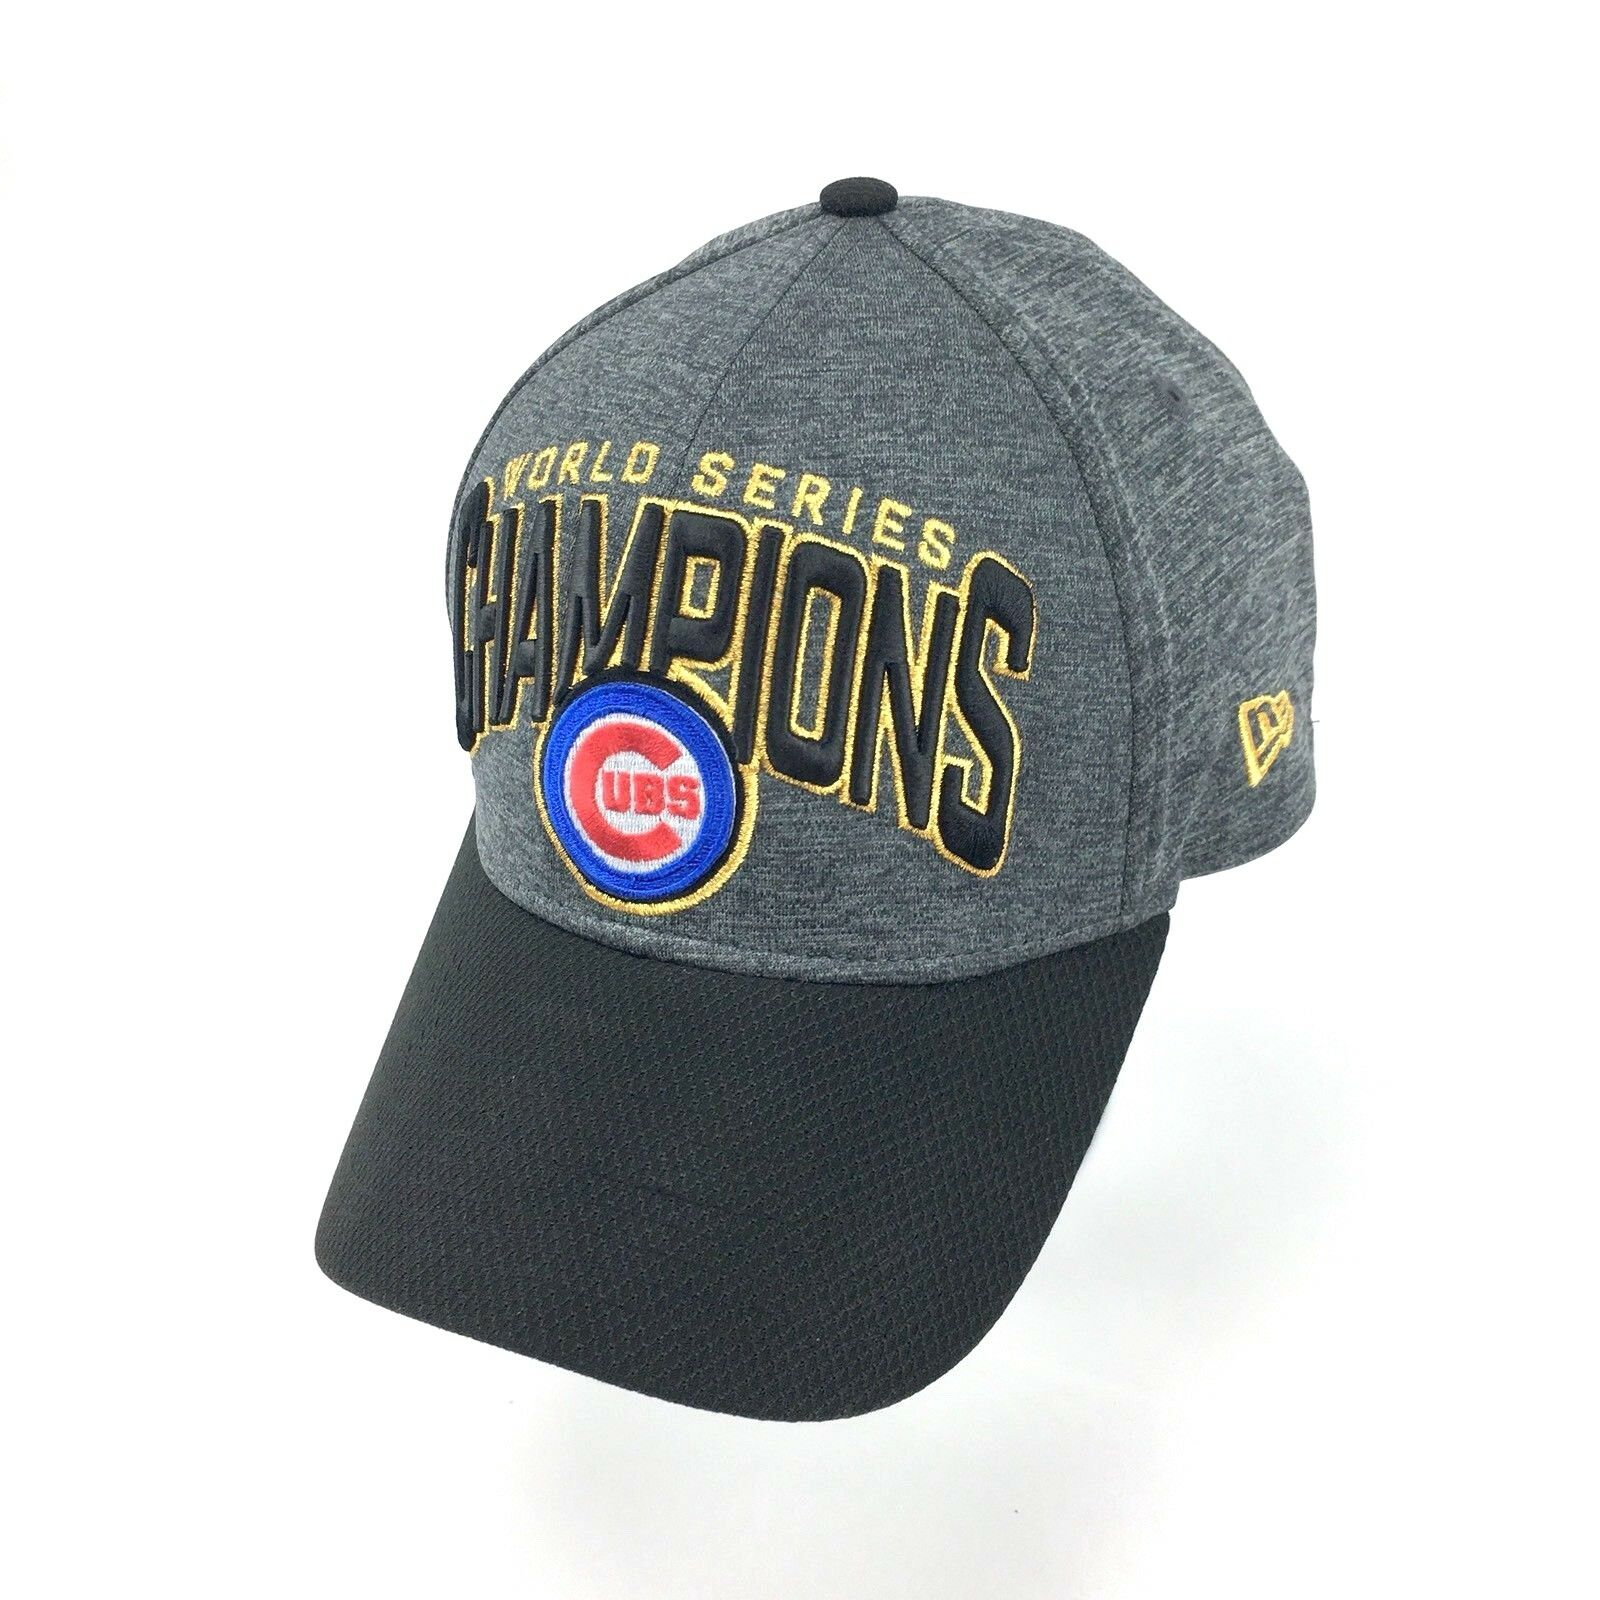 the latest 445c1 63af6 ... clearance chicago cubs hat grey new era 2016 world series champions mlb hat  cubs cap c31fc4 ...